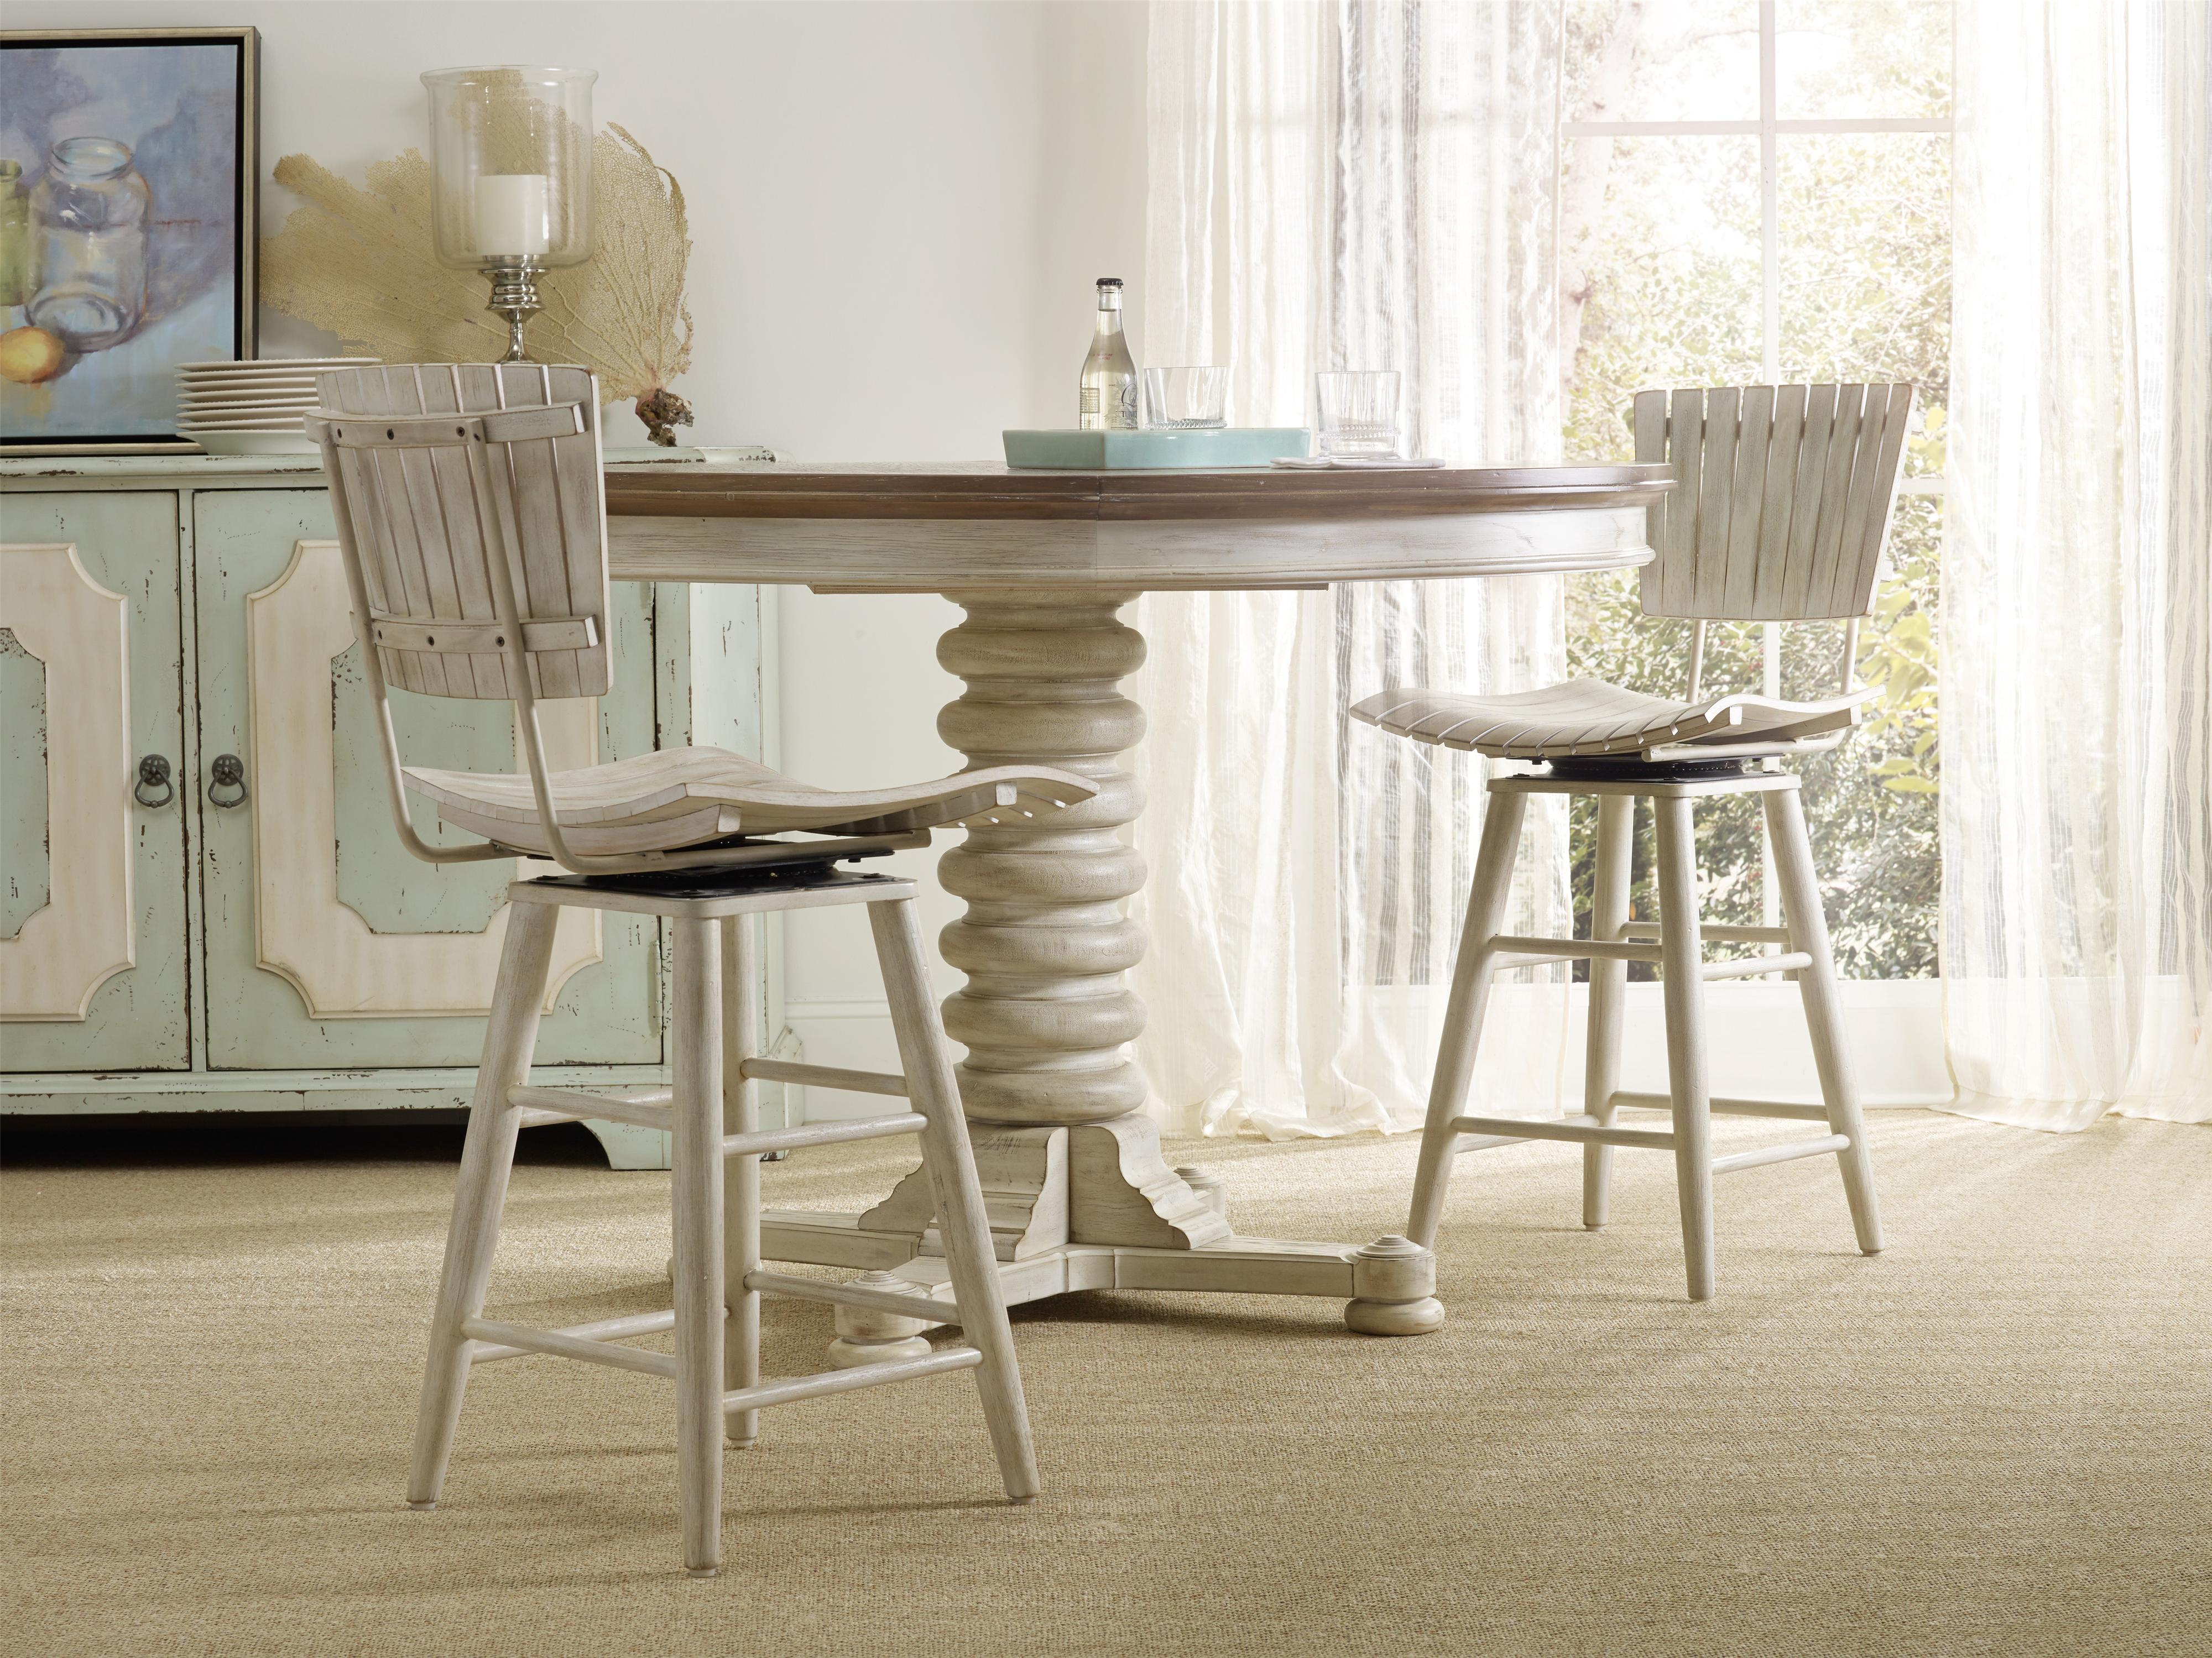 Hooker Furniture Sunset Point Casual Dining Room Group - Item Number: 5325 Dining Room Group 3